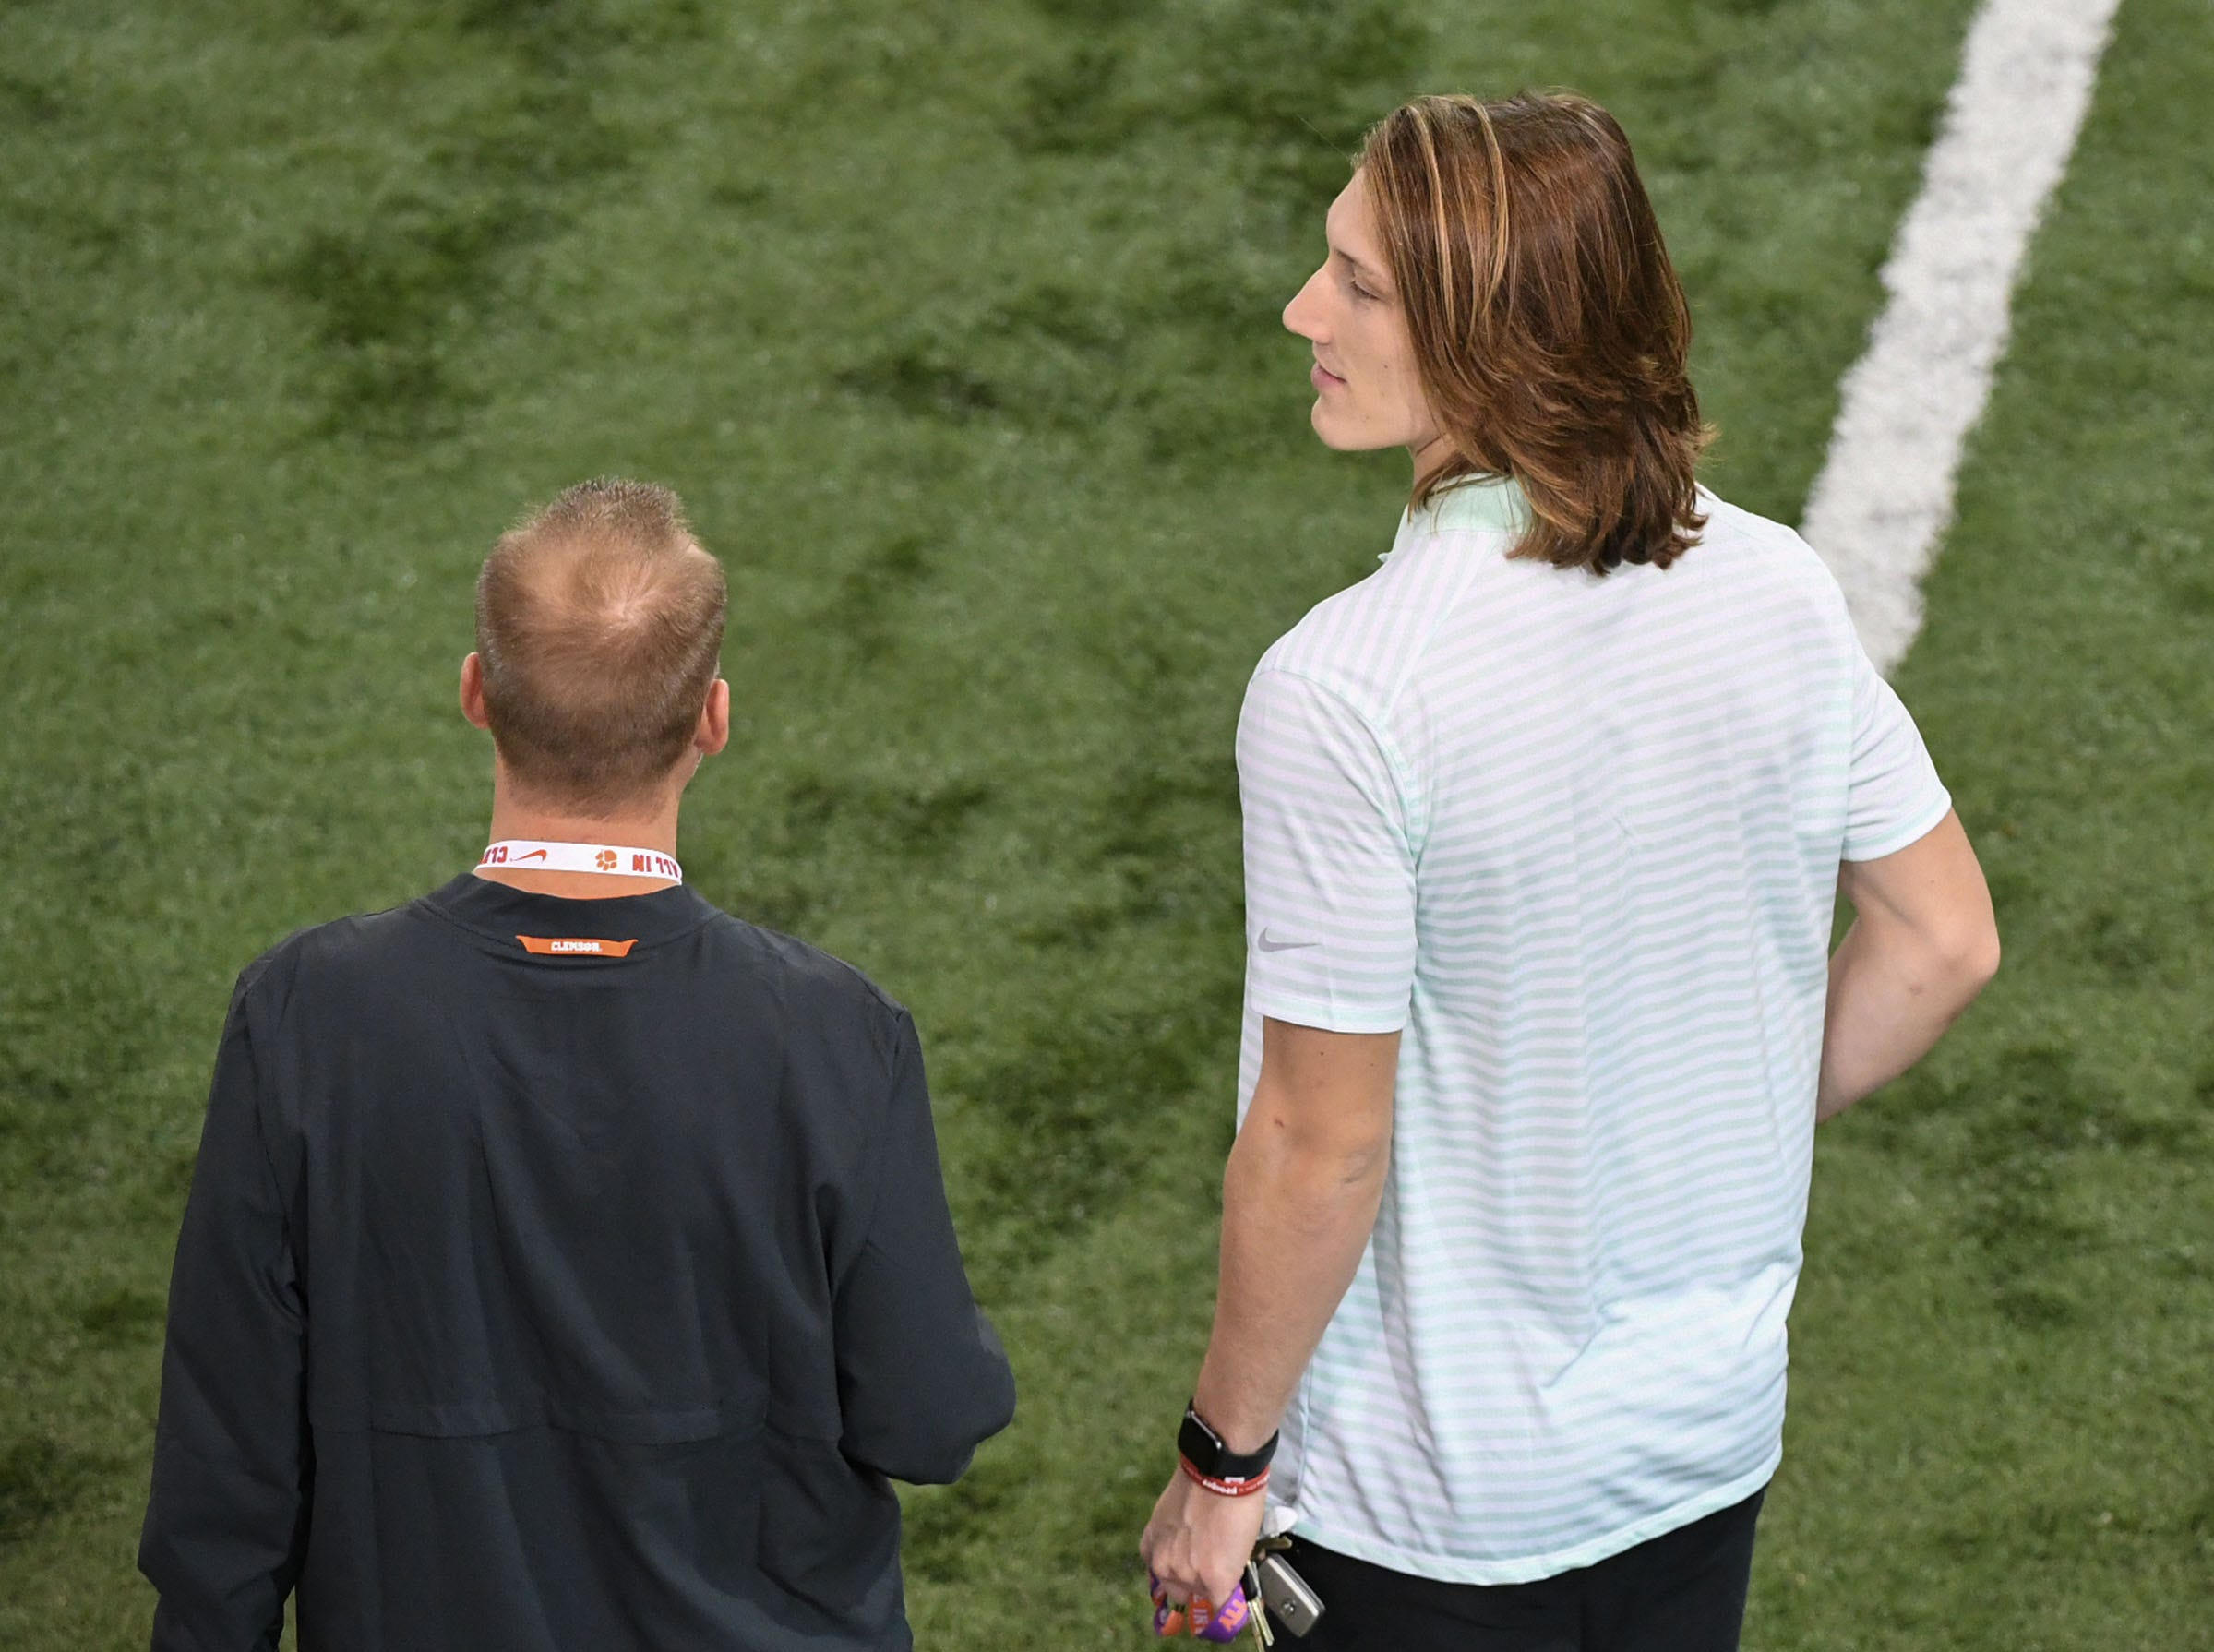 Clemson quarterback coach Brandon Streeter, left, with quarterback Trevor Lawrence during Clemson Pro Day at the Poe Indoor Facility in Clemson, S.C. Thursday, March 14, 2019.